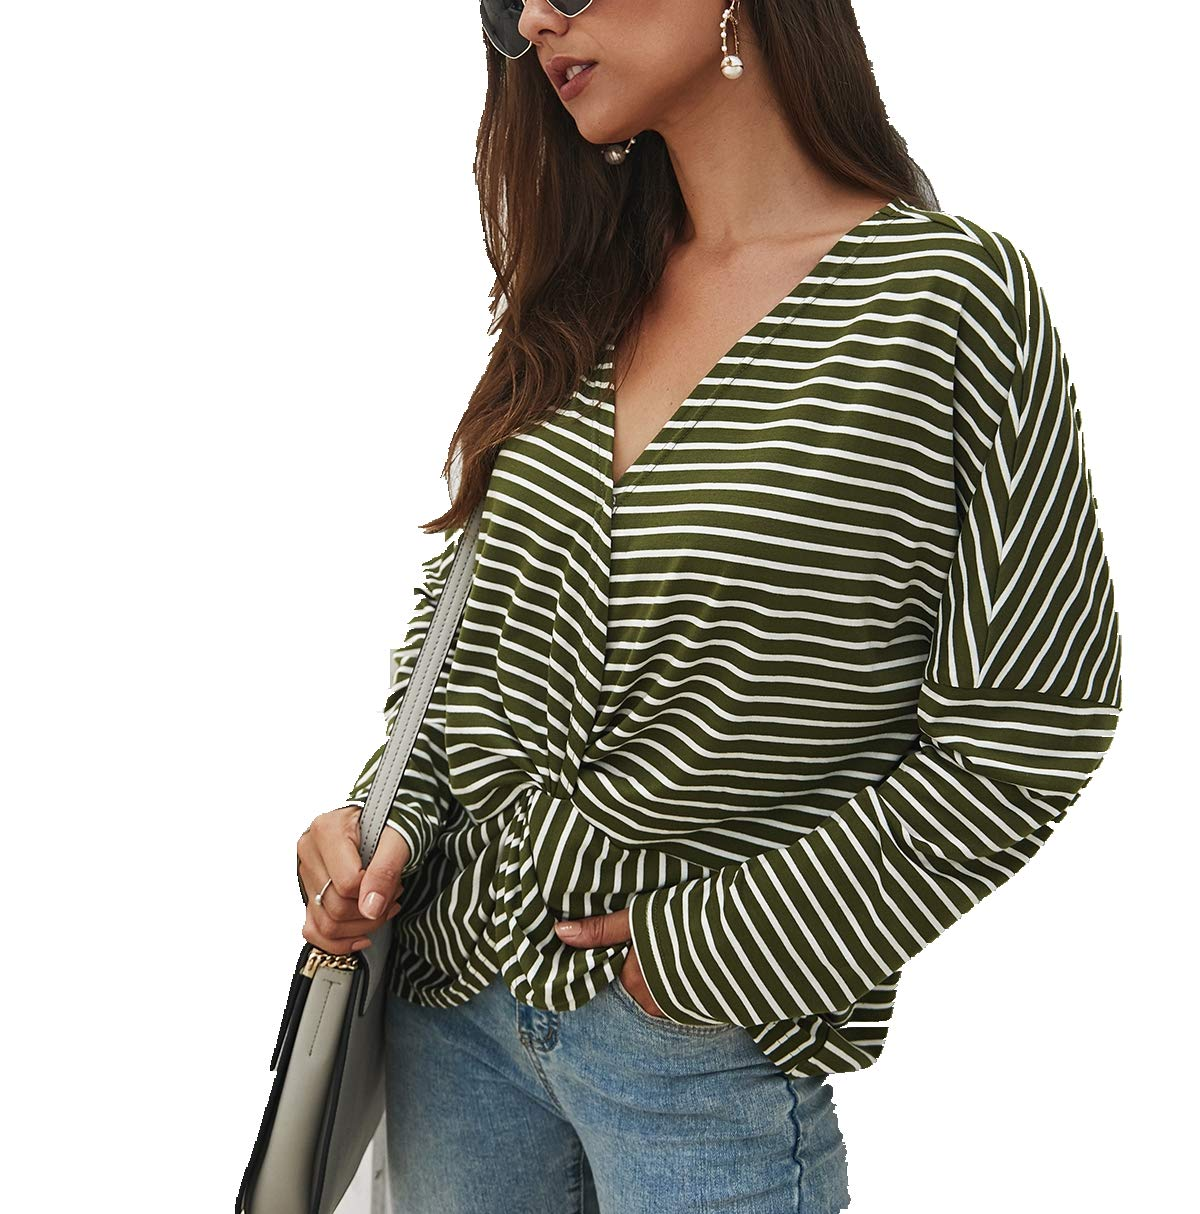 Women's Casual Striped T Shirt Tops,Long Patchwork Sleeve Front Twise Wrap V Neck Loose Basic Soft Tee Tunic Blouse Green by KINGLEN Womens Top